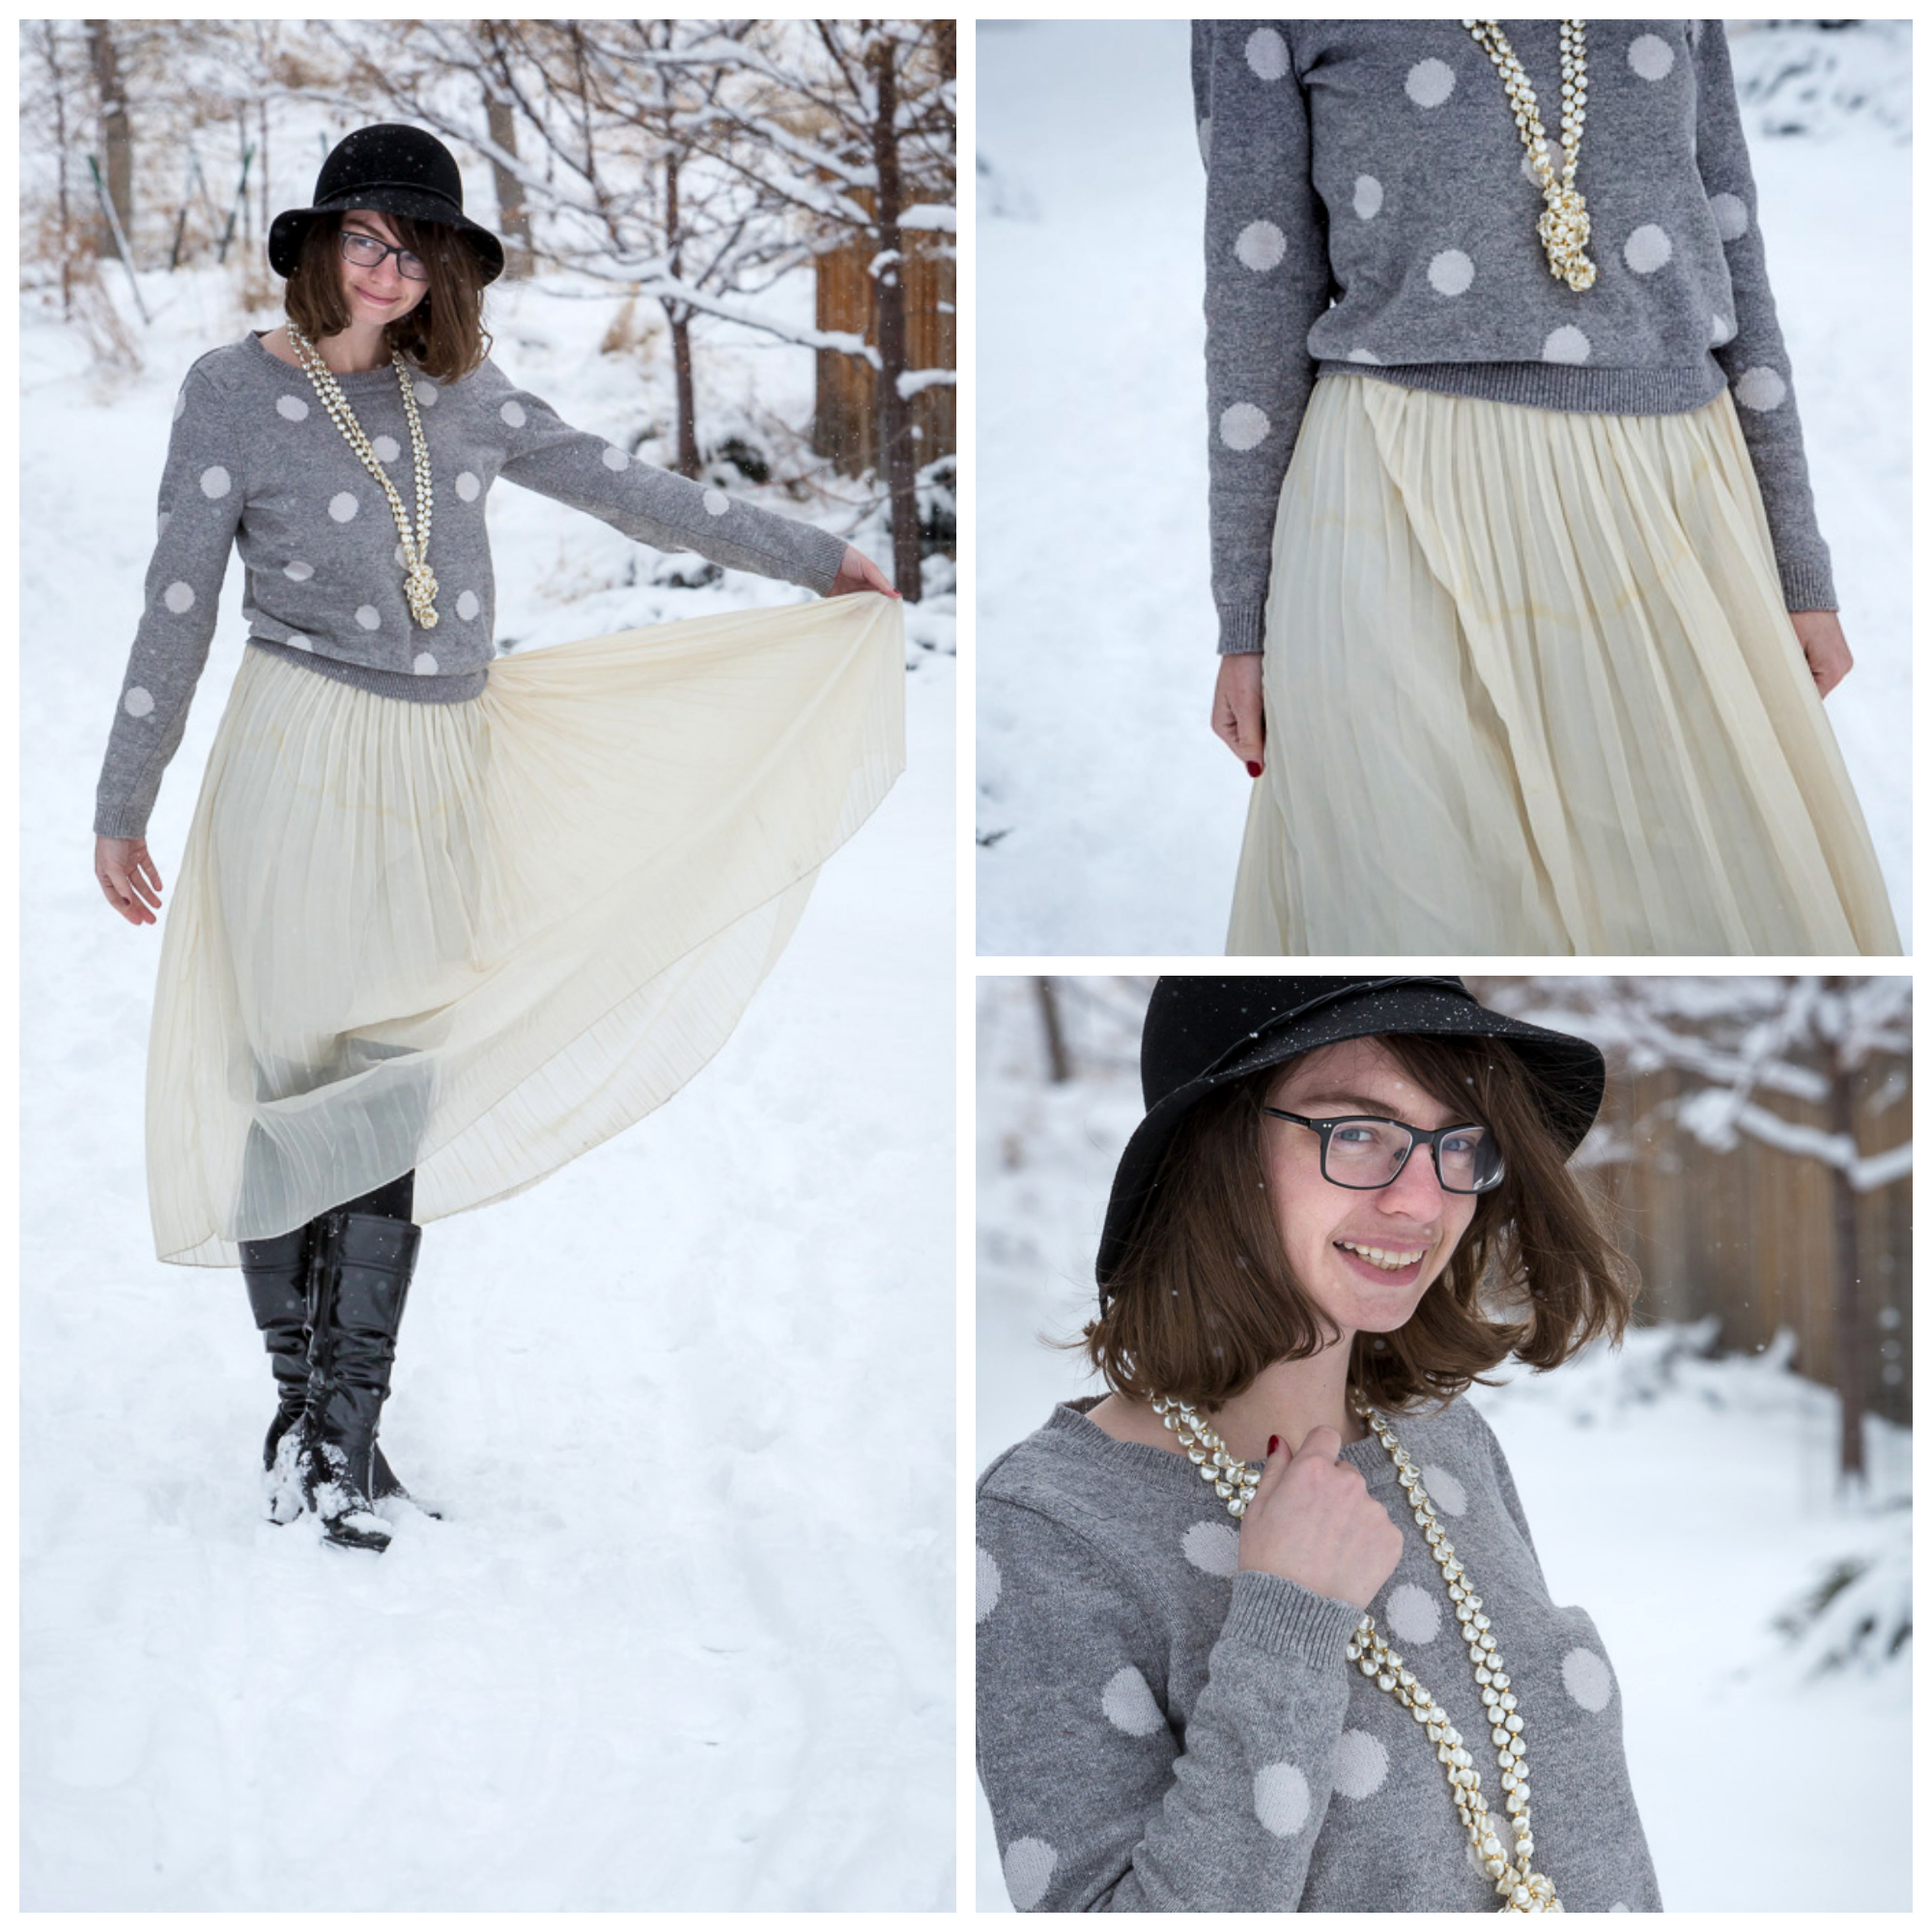 polka Dot, Sweater, pearl necklace, slouchy outfit, wyoming, never fully dressed, withoutastyle,